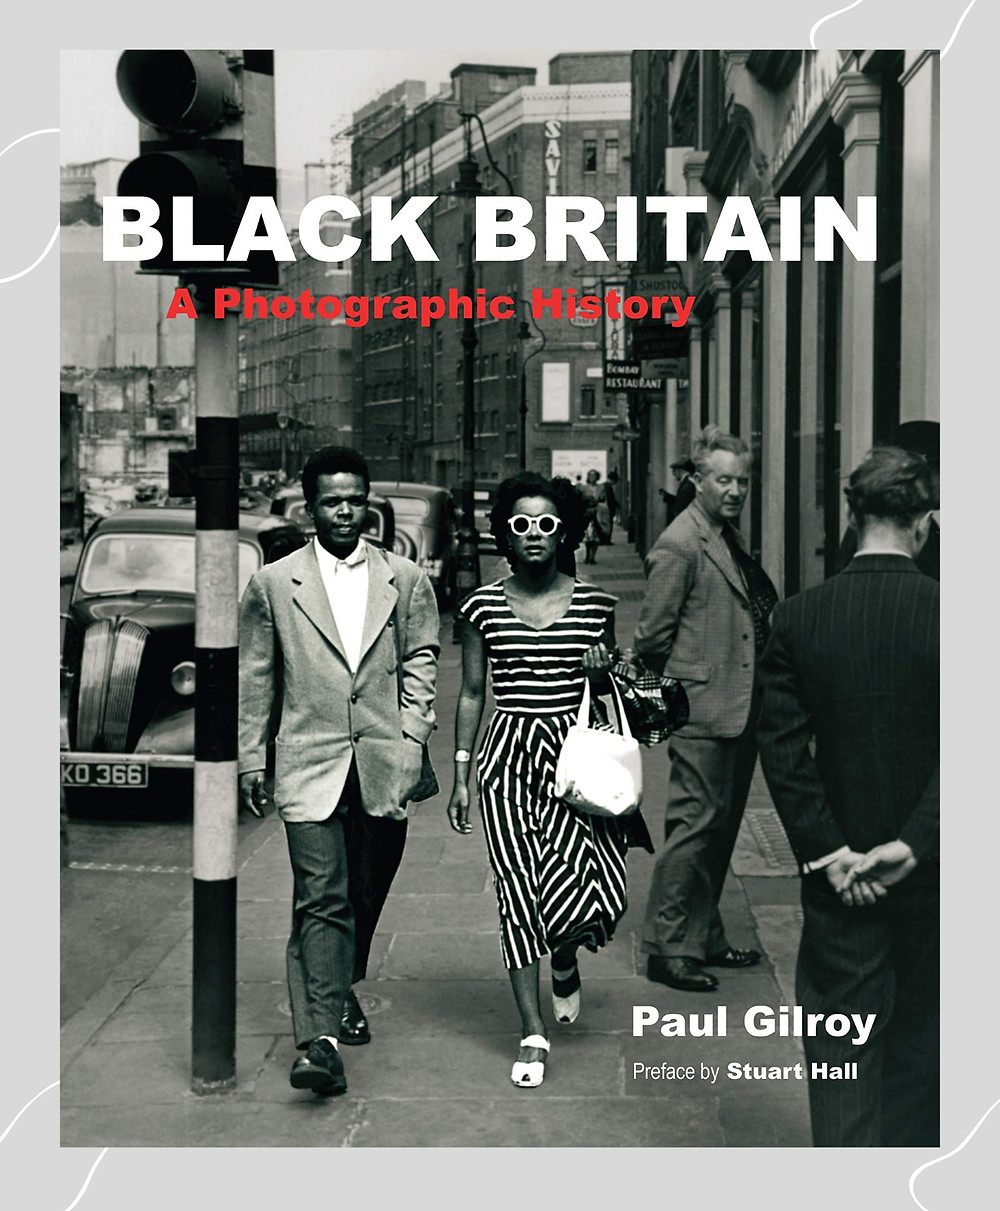 'Black Britain' by Paul Gilroy